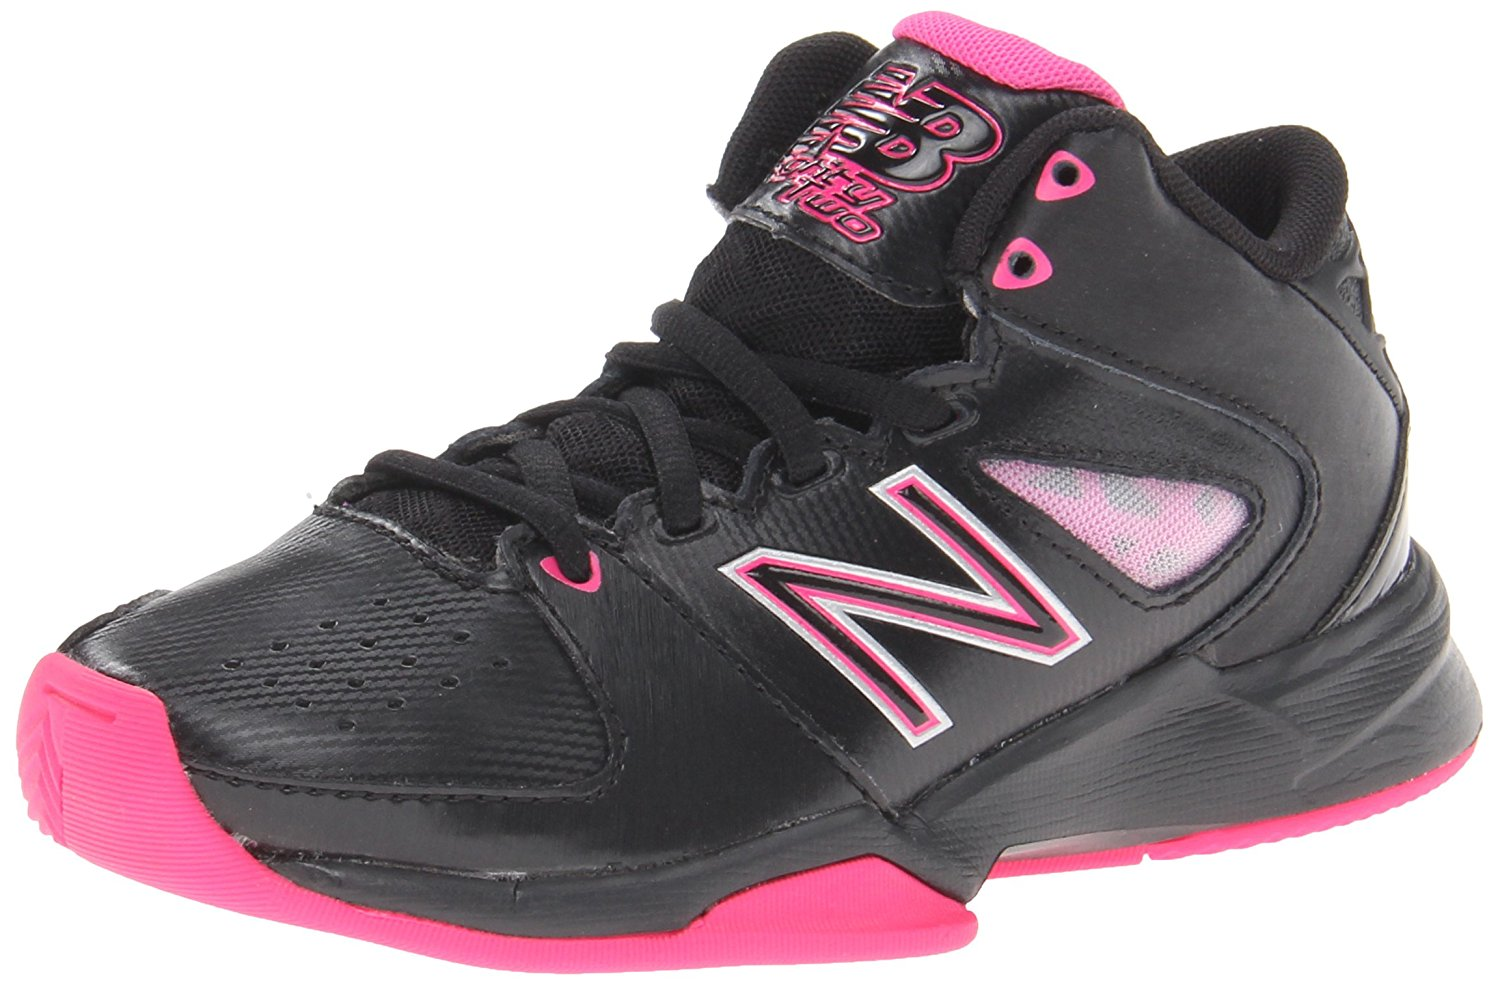 new balance basketball sneaker image